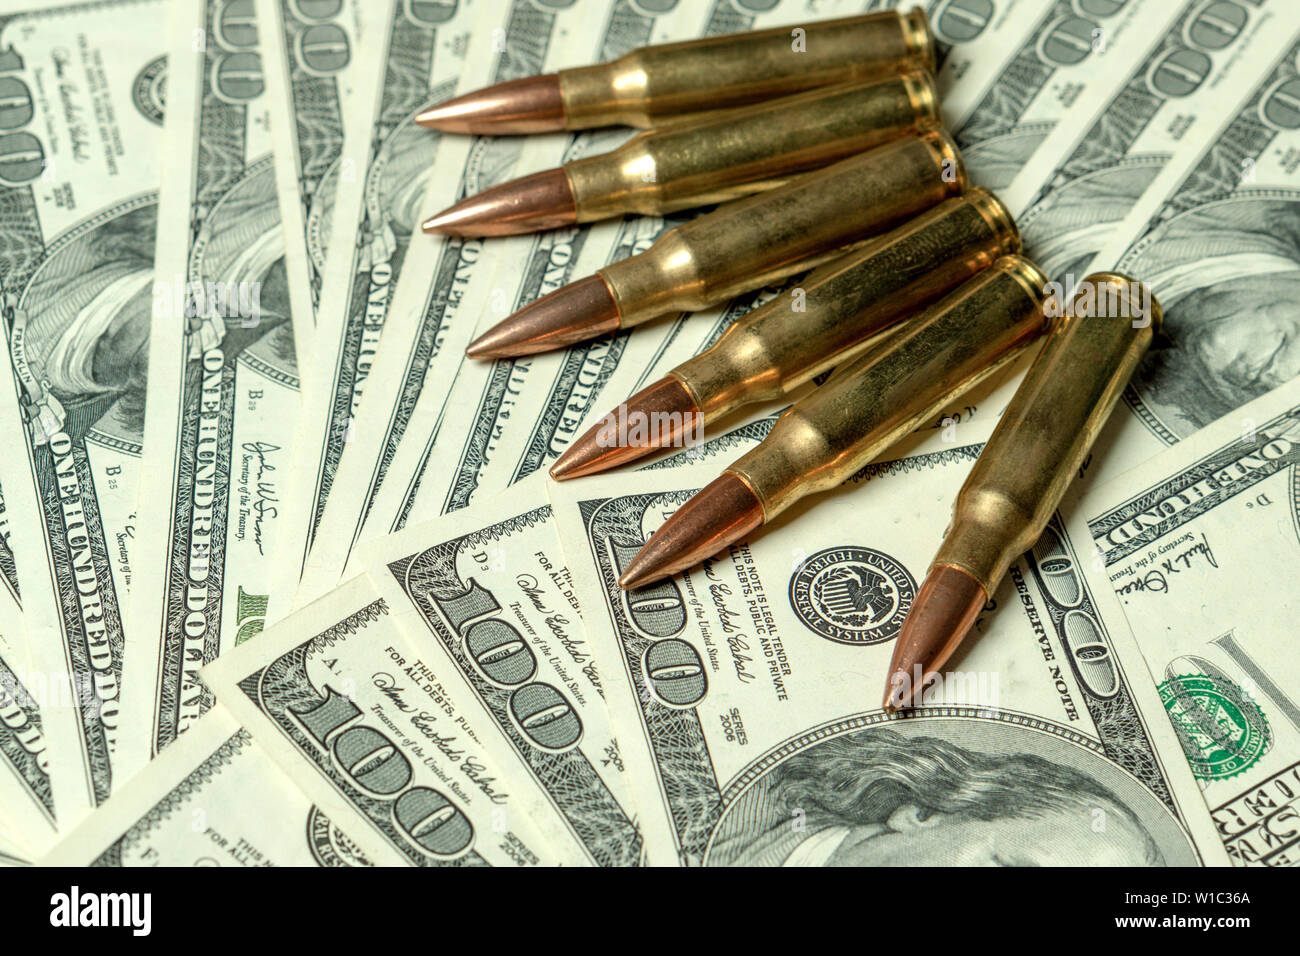 Rifle cartridges on dollars. Concept for crime, contract killing, paid assassin, terrorism, war, global arms trade, weapons sale. Illegal hunting - Stock Image